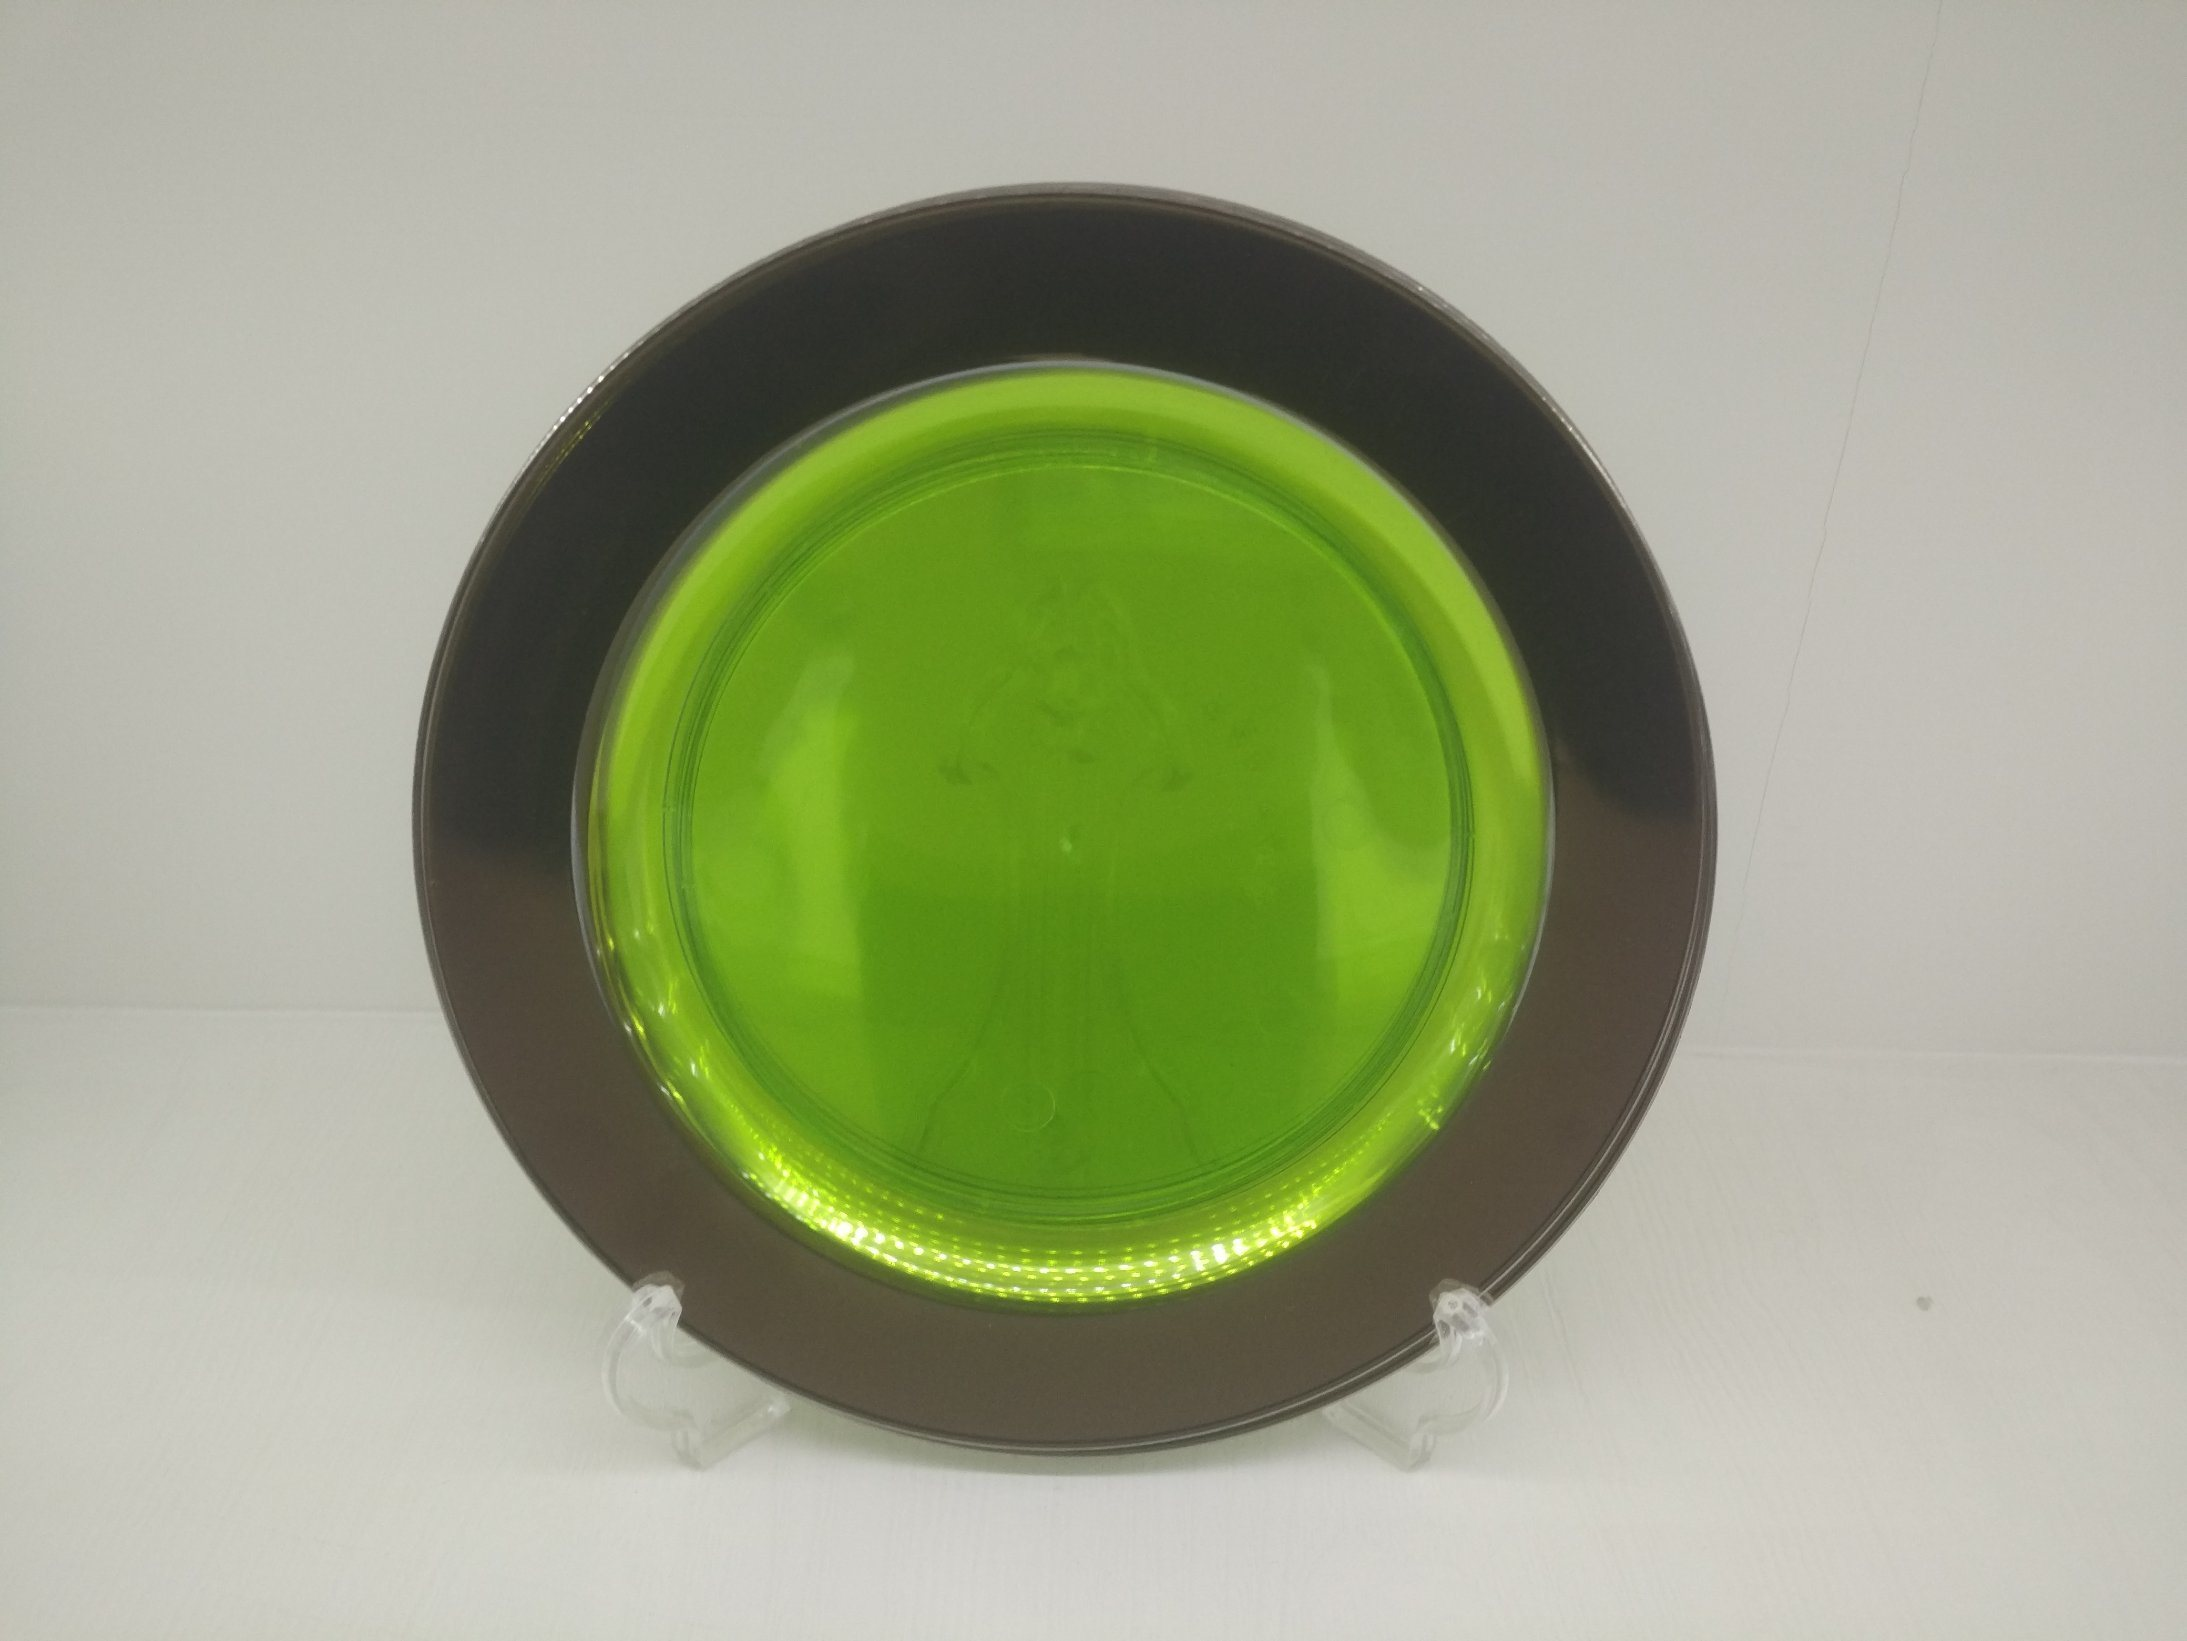 Plastic Plate, Disposable, Tableware, Tray, Dish, Colorful, PS, SGS, Silver Rim Plate, PA-01